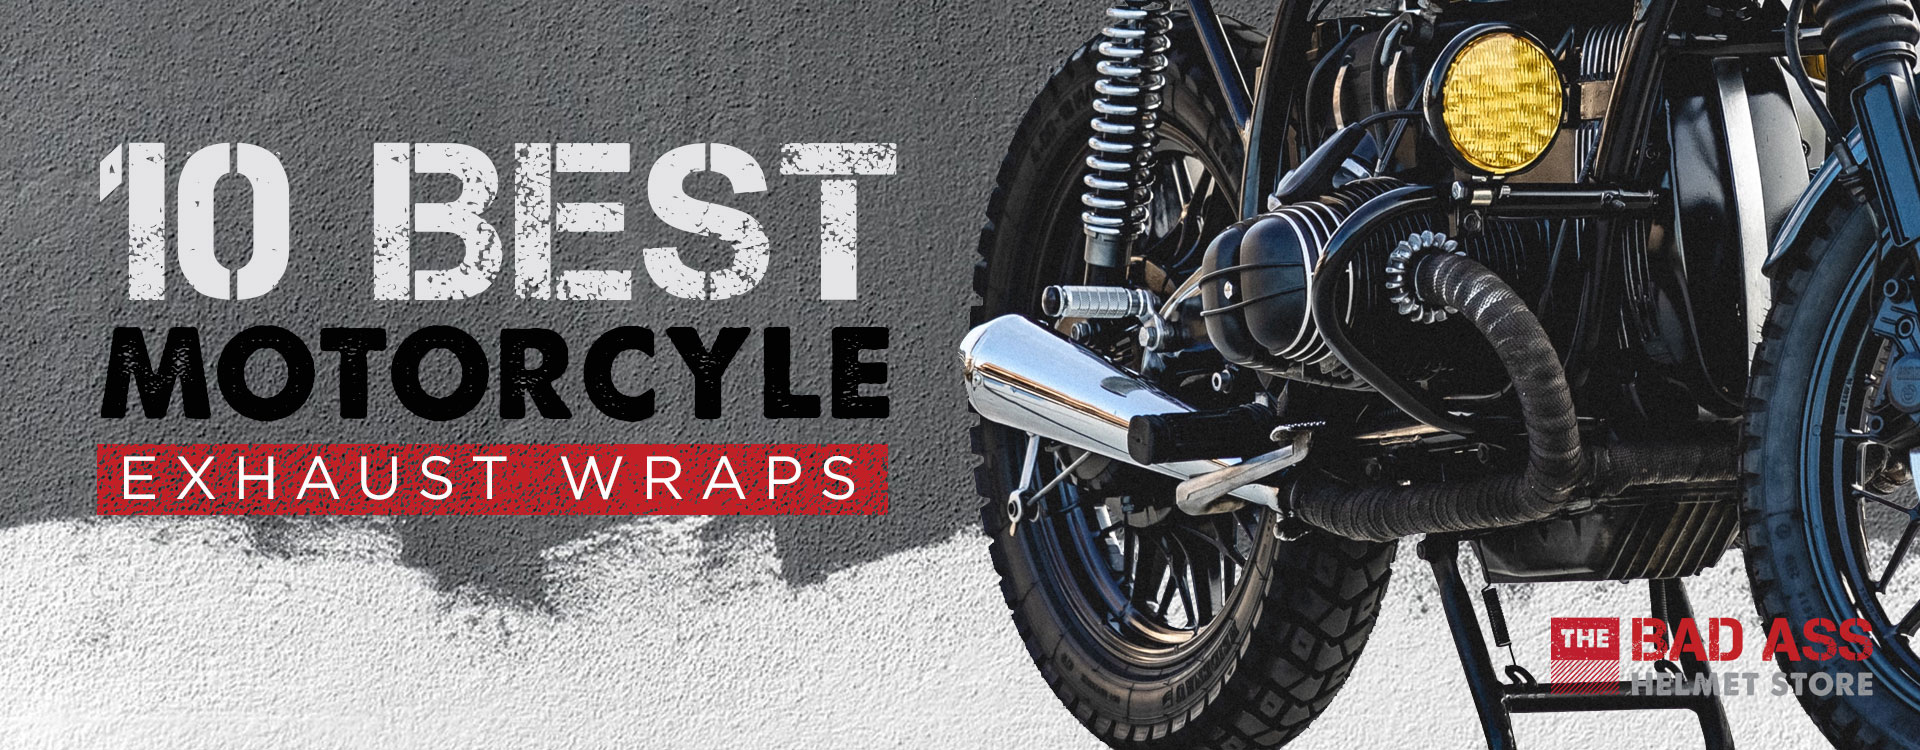 10 Best Motorcycle Exhaust Wraps